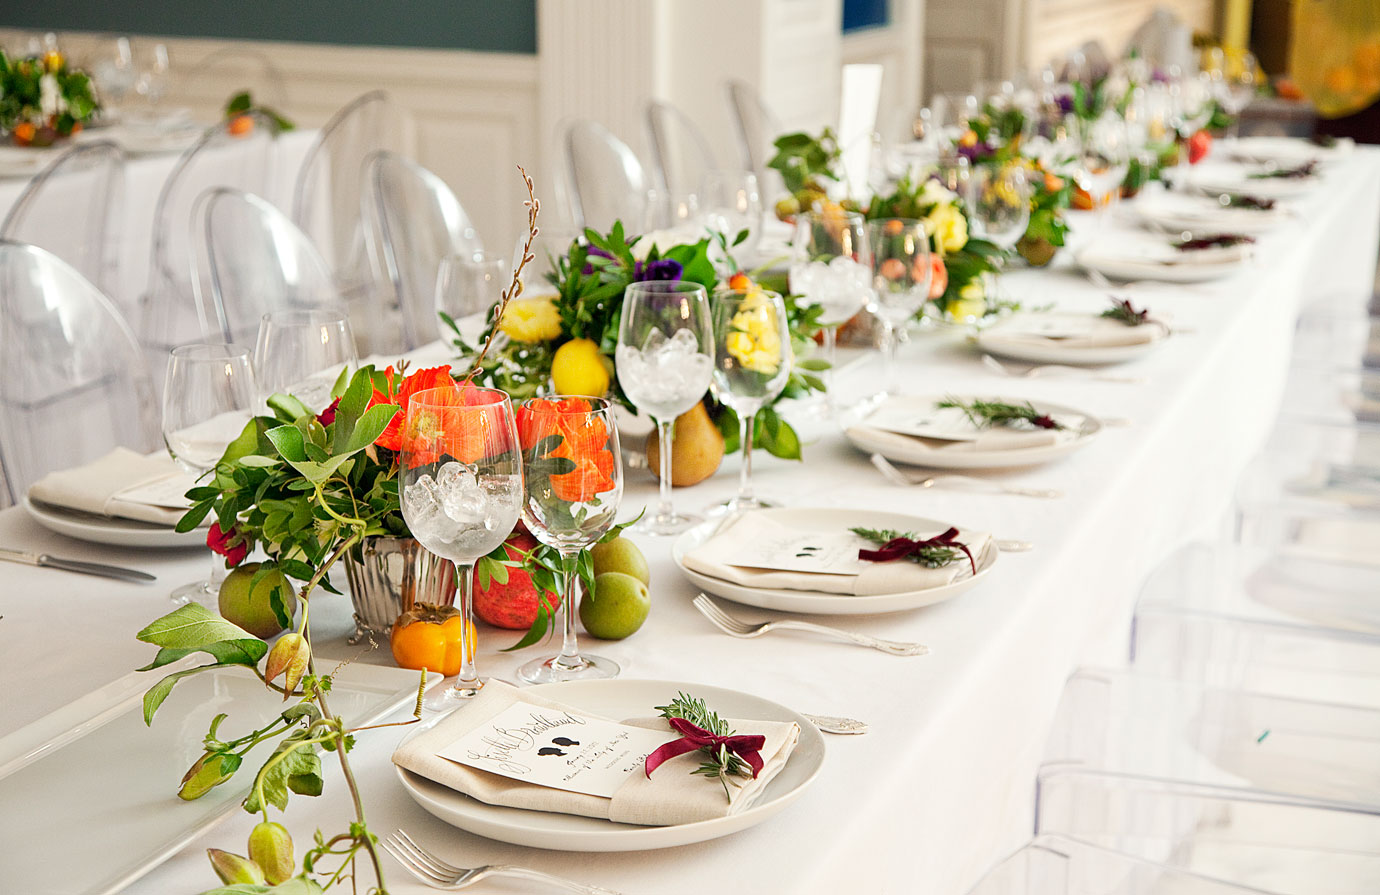 09-TCX-dinner-table-at-wedding-wedding1012